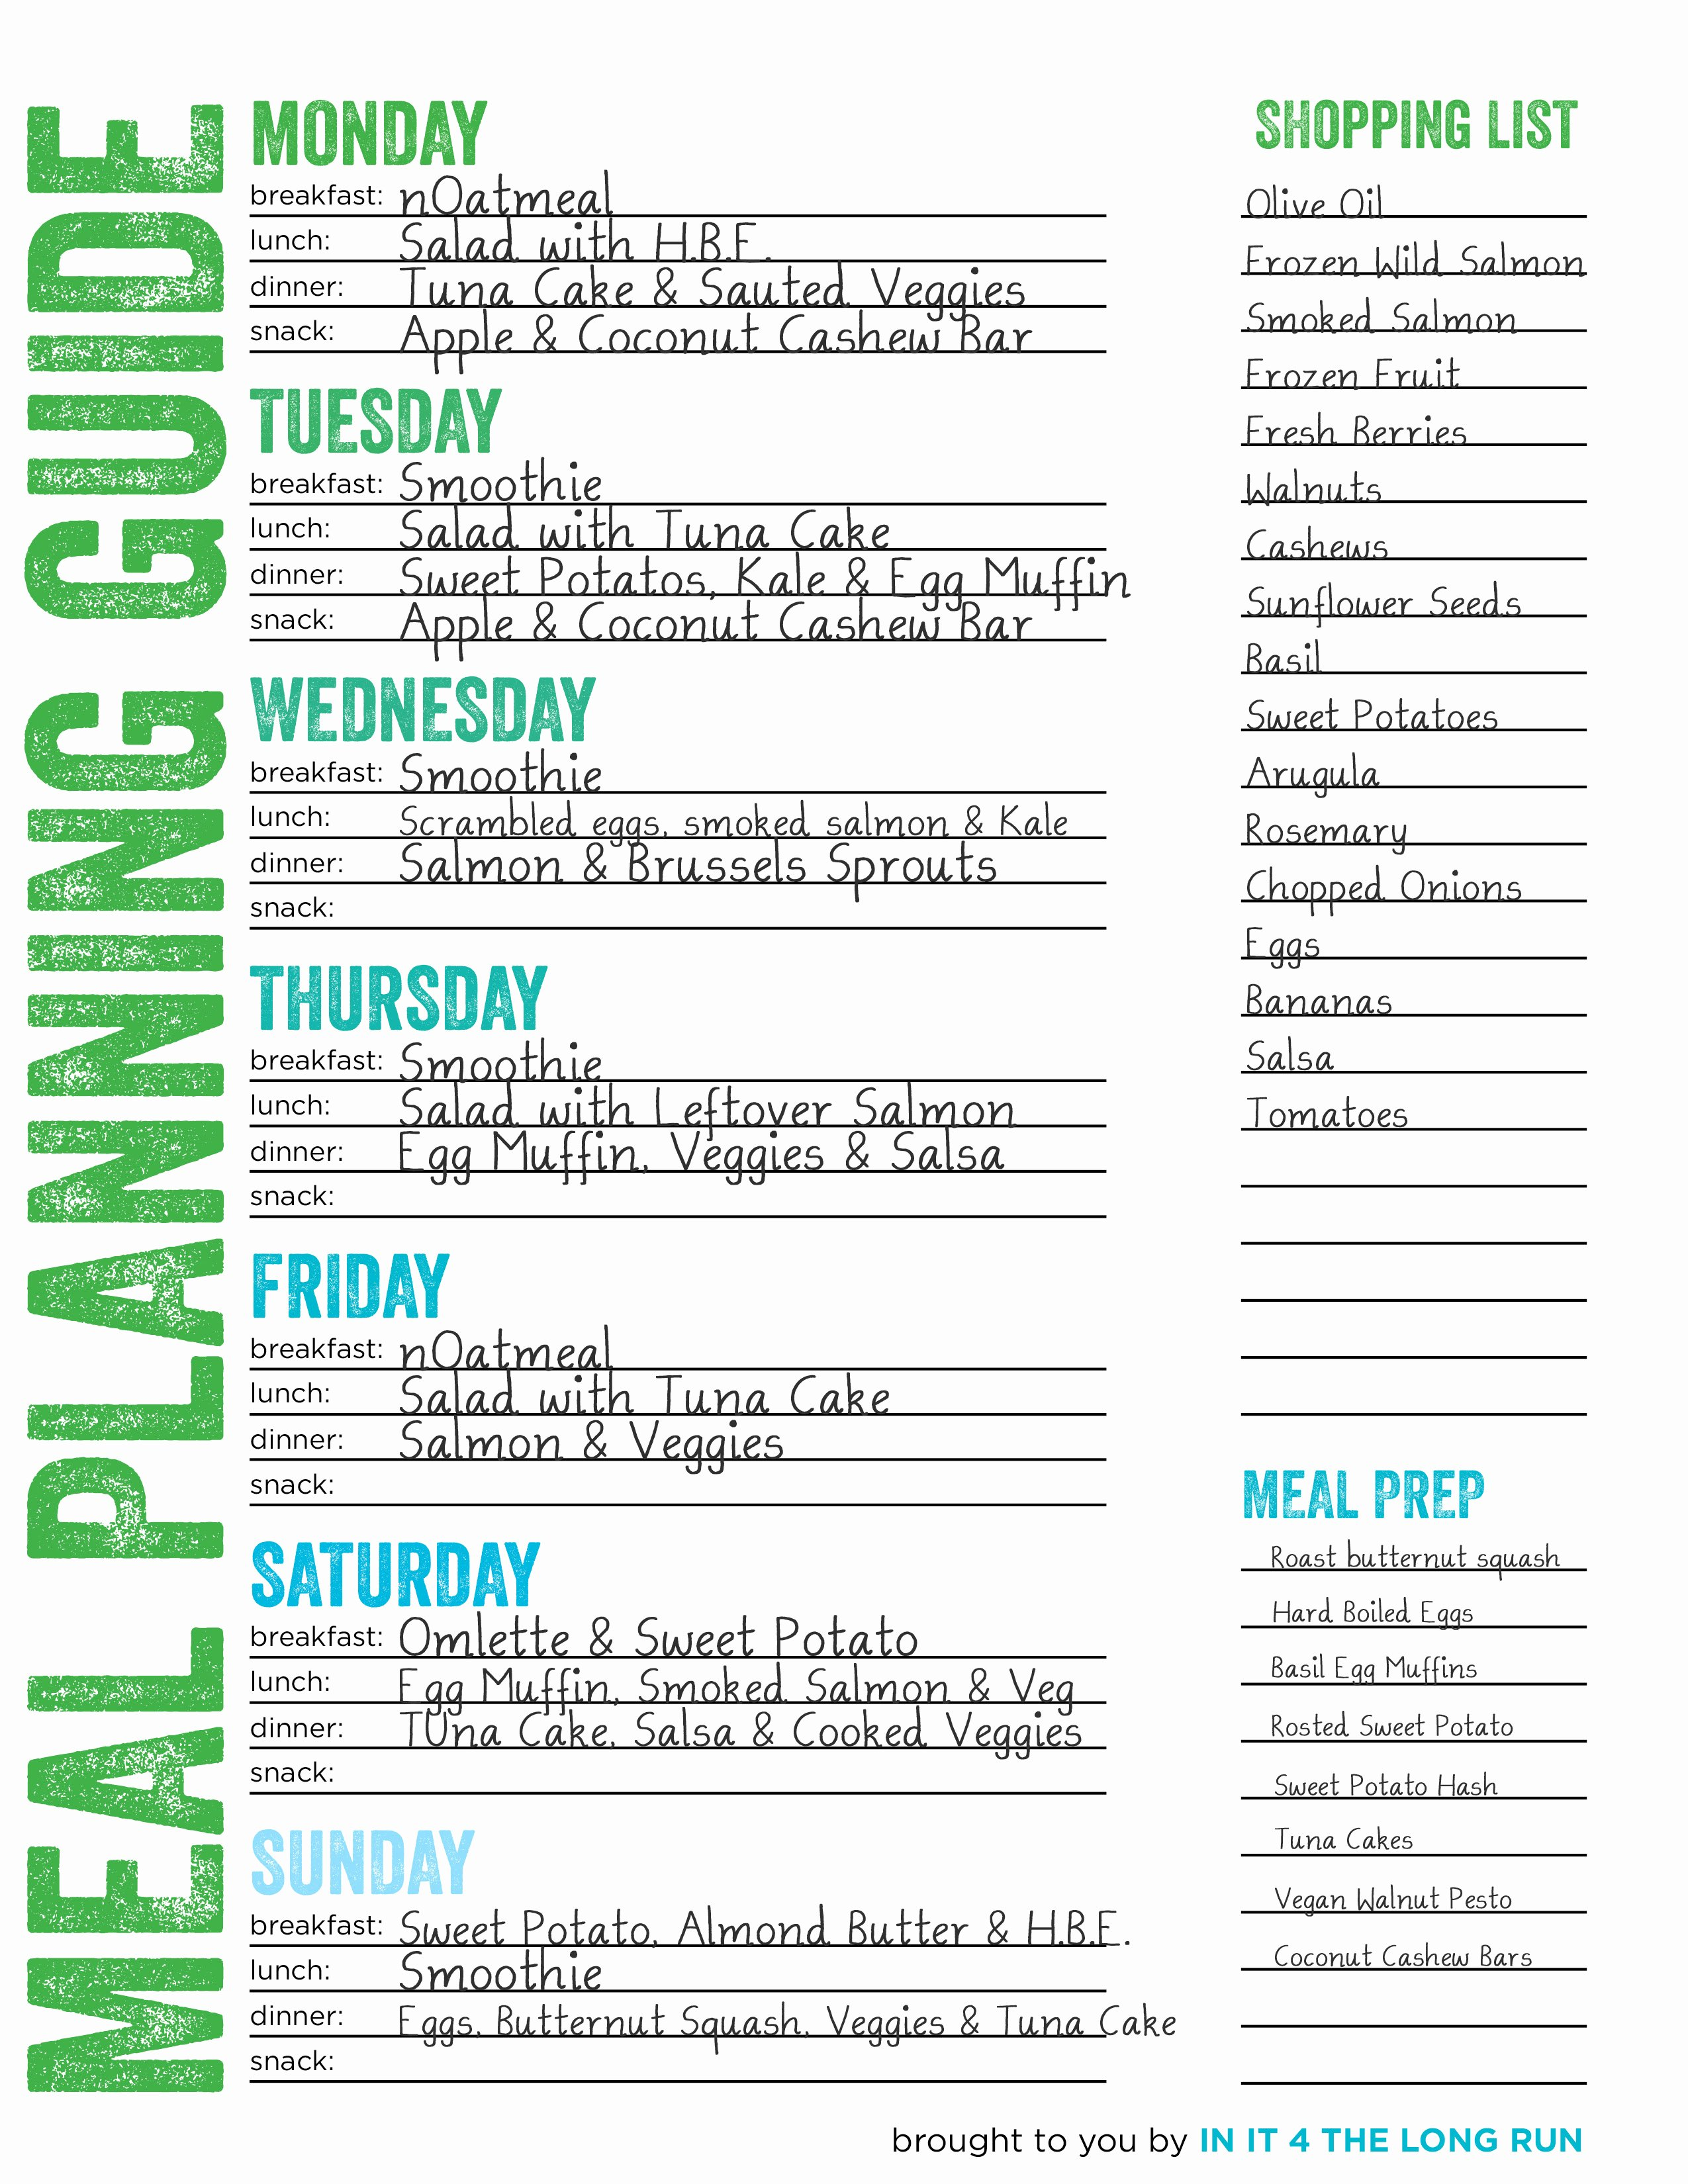 Whole30 Meal Plan Template Inspirational What I Planned Vs What I Actually Bought and Prepped